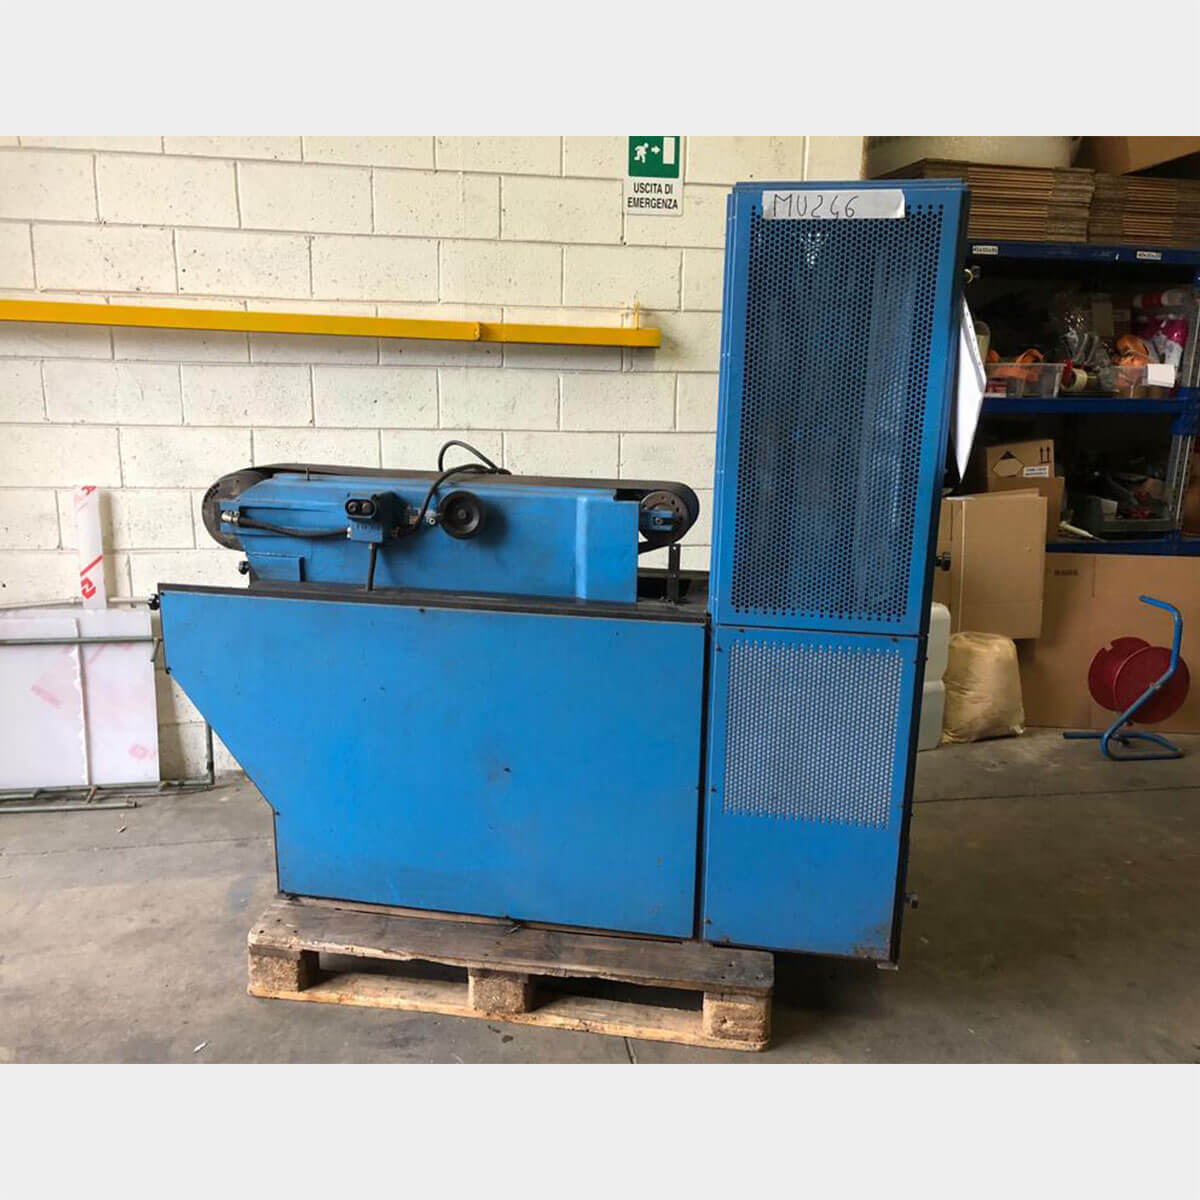 IPERCO belt resurfacing machine